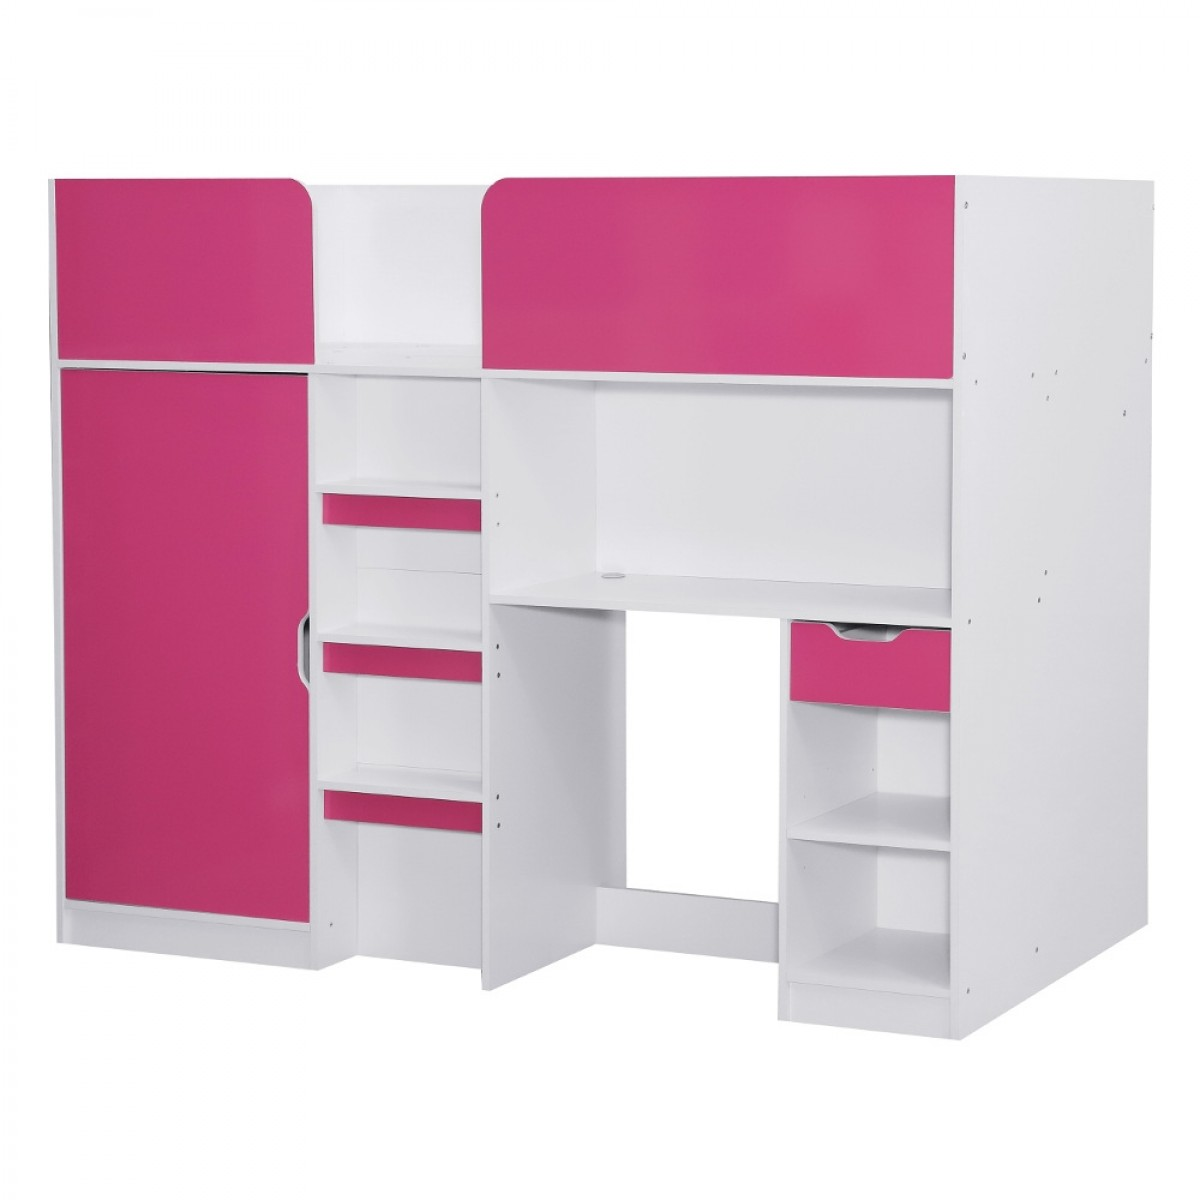 Merlin Pink and White Wooden High Sleeper Storage Bed